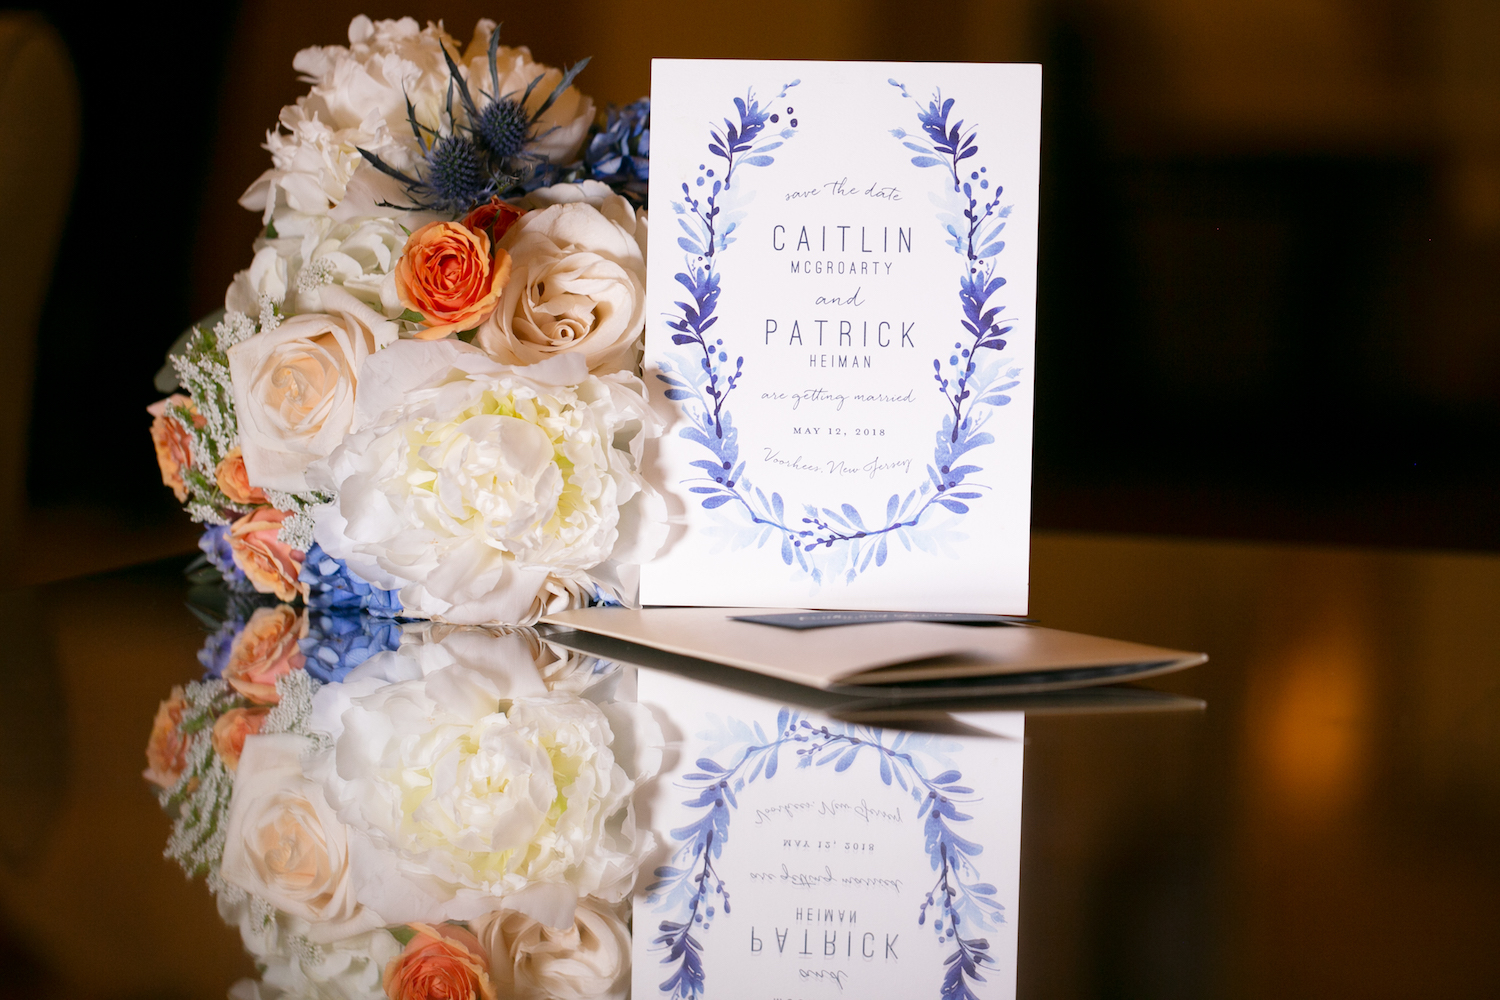 Caitlin and Patrick – Wedding Photo Highlights from The Mansion on Main Street in Voorhees Township, NJ